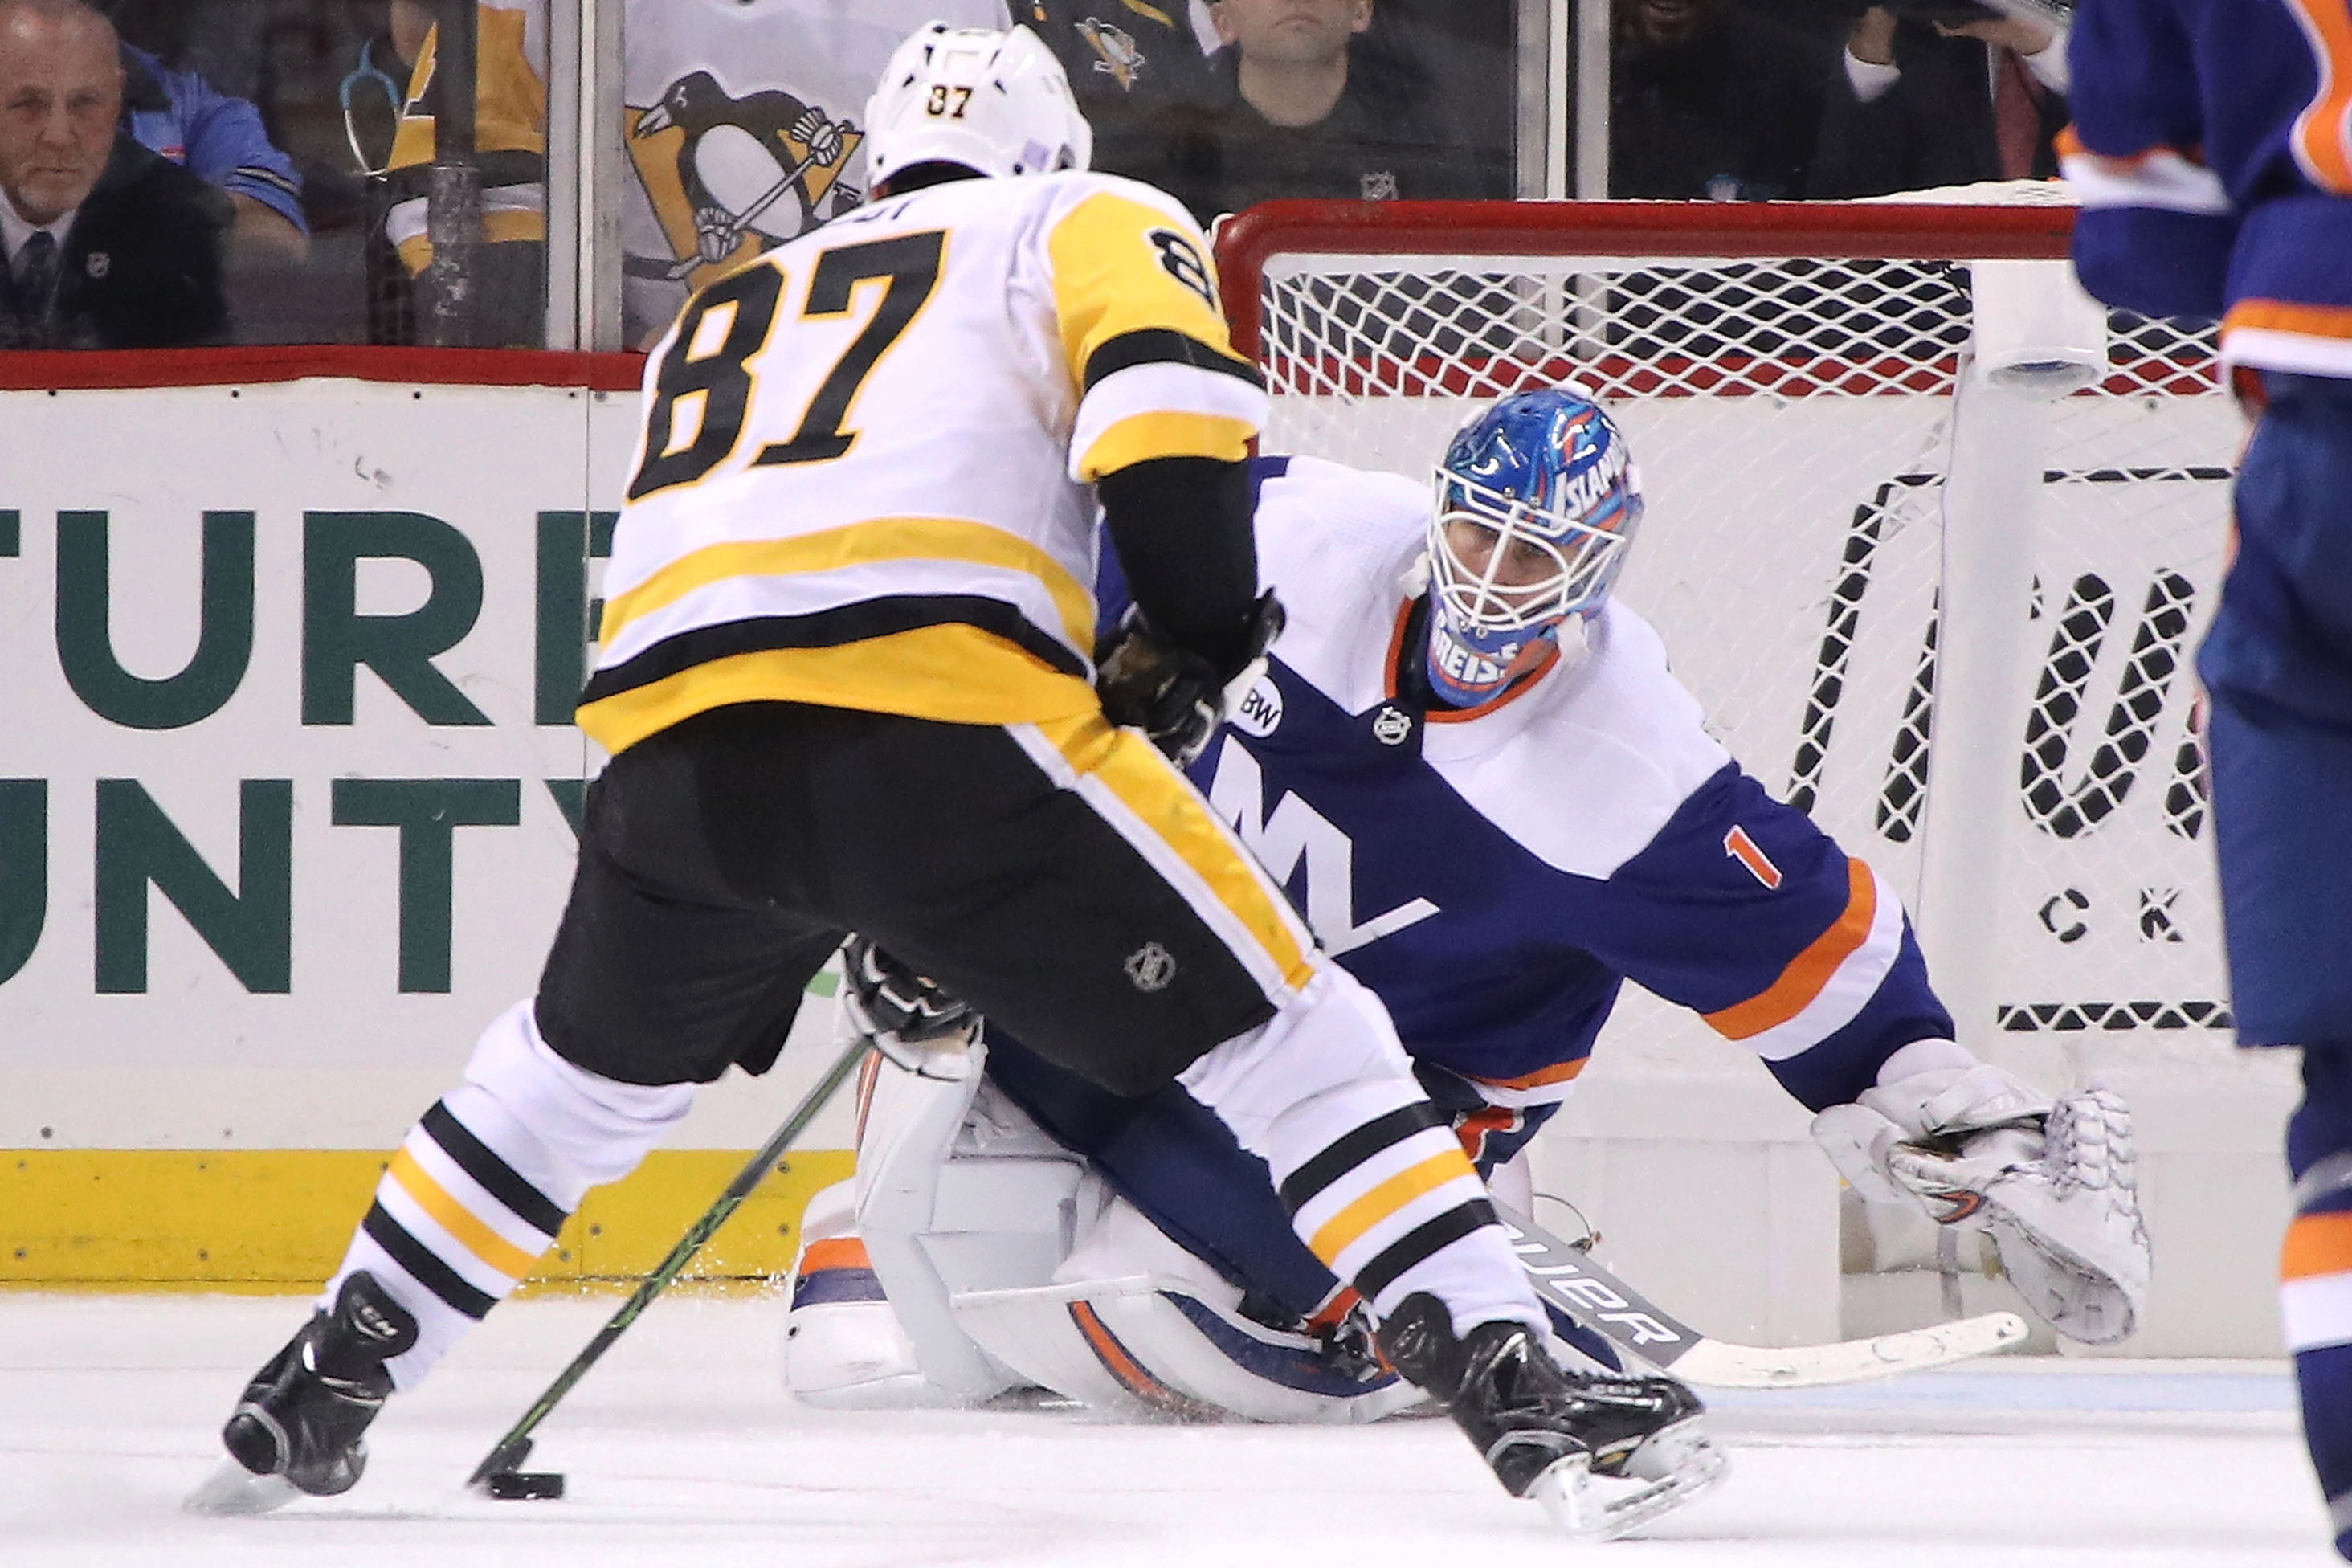 Islanders Will Stay Unbeaten At Coliseum By Beating Penguins